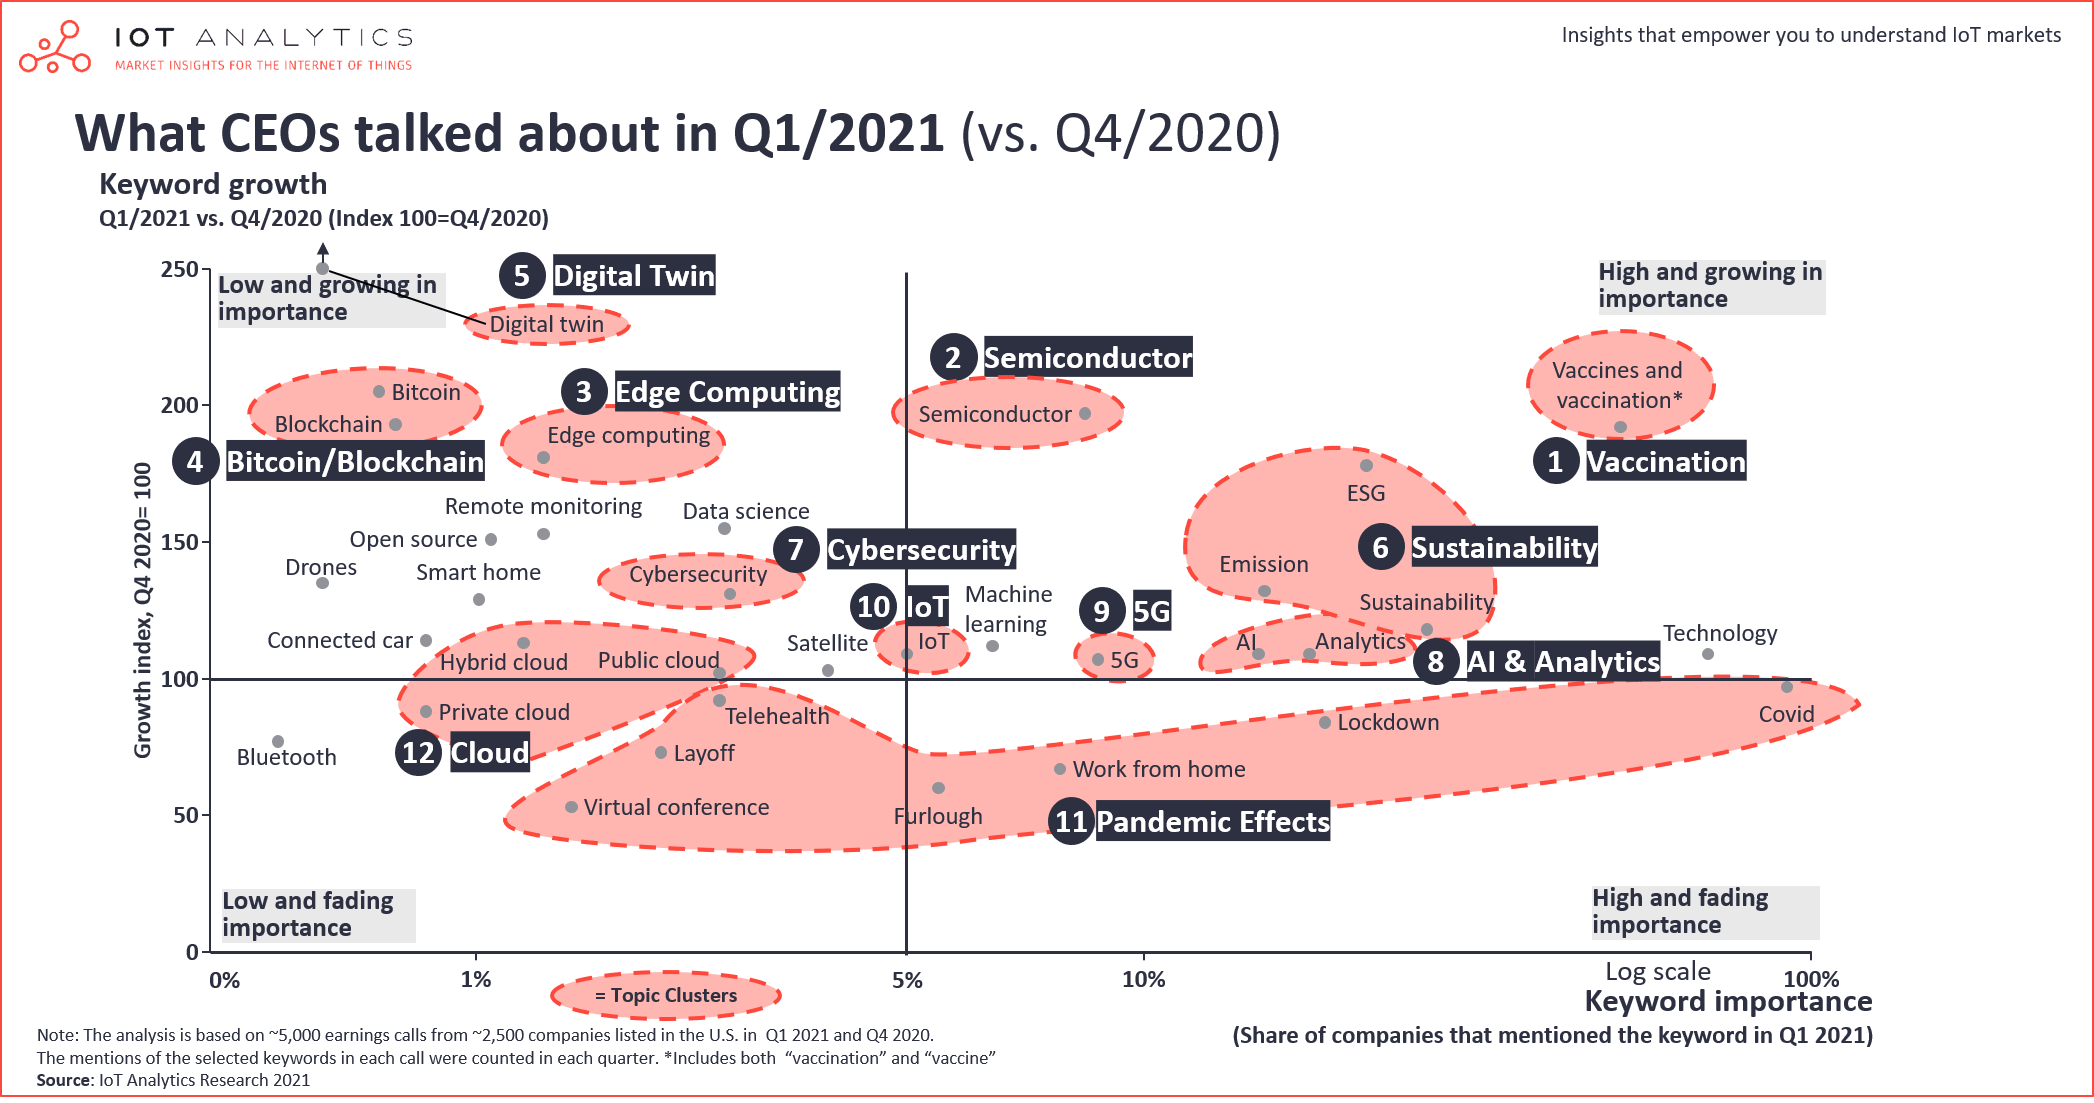 What CEOs talked about Q1 2021